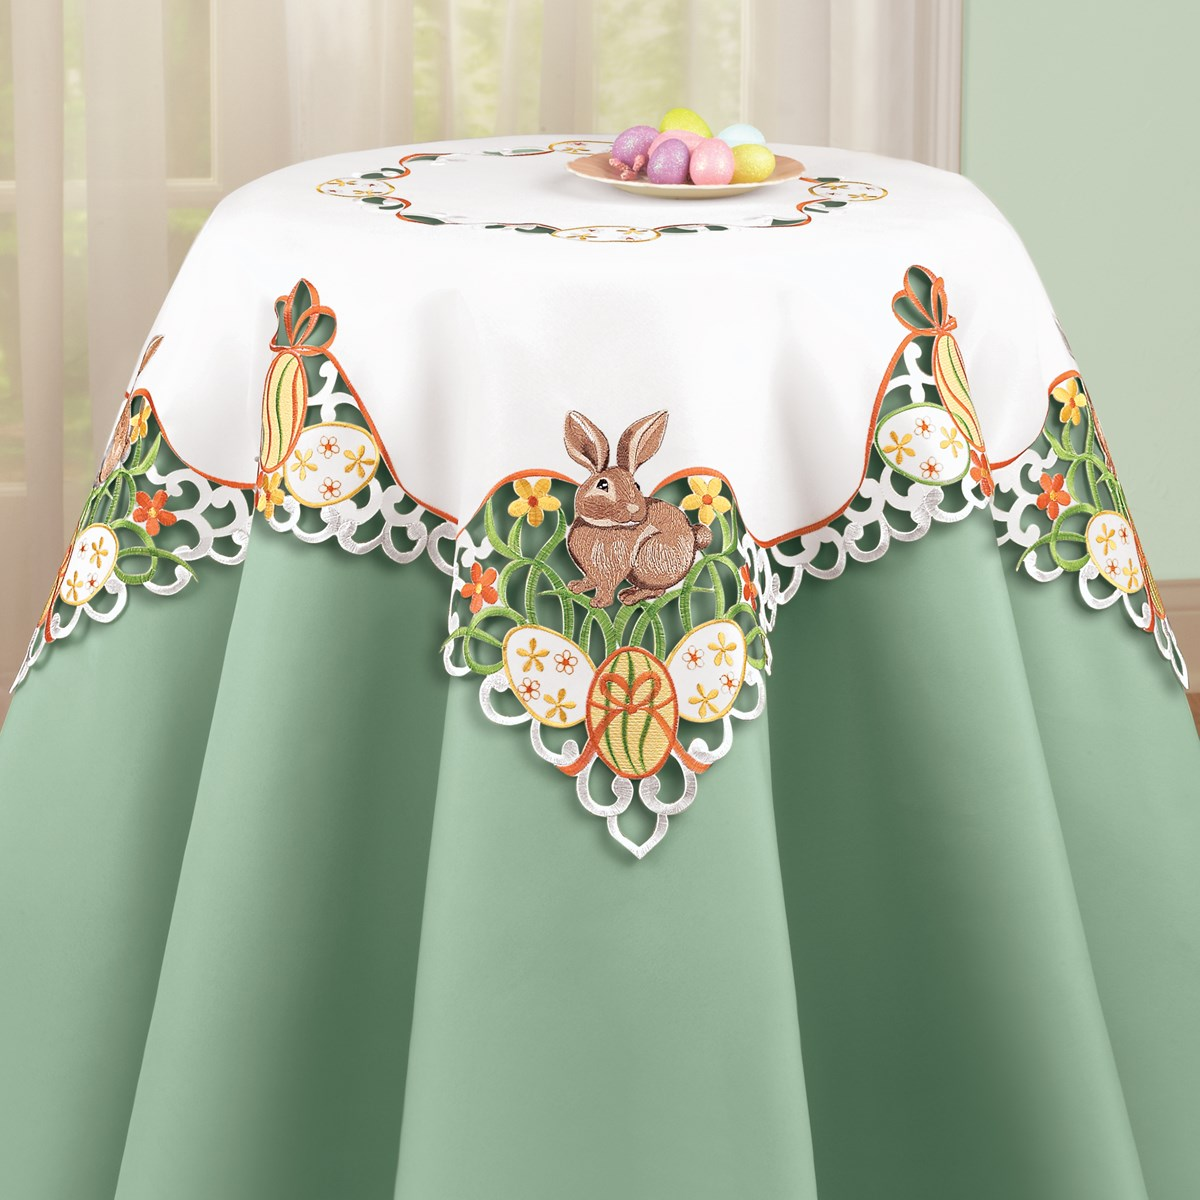 Easter Bunny And Eggs Table Linens Collections Etc